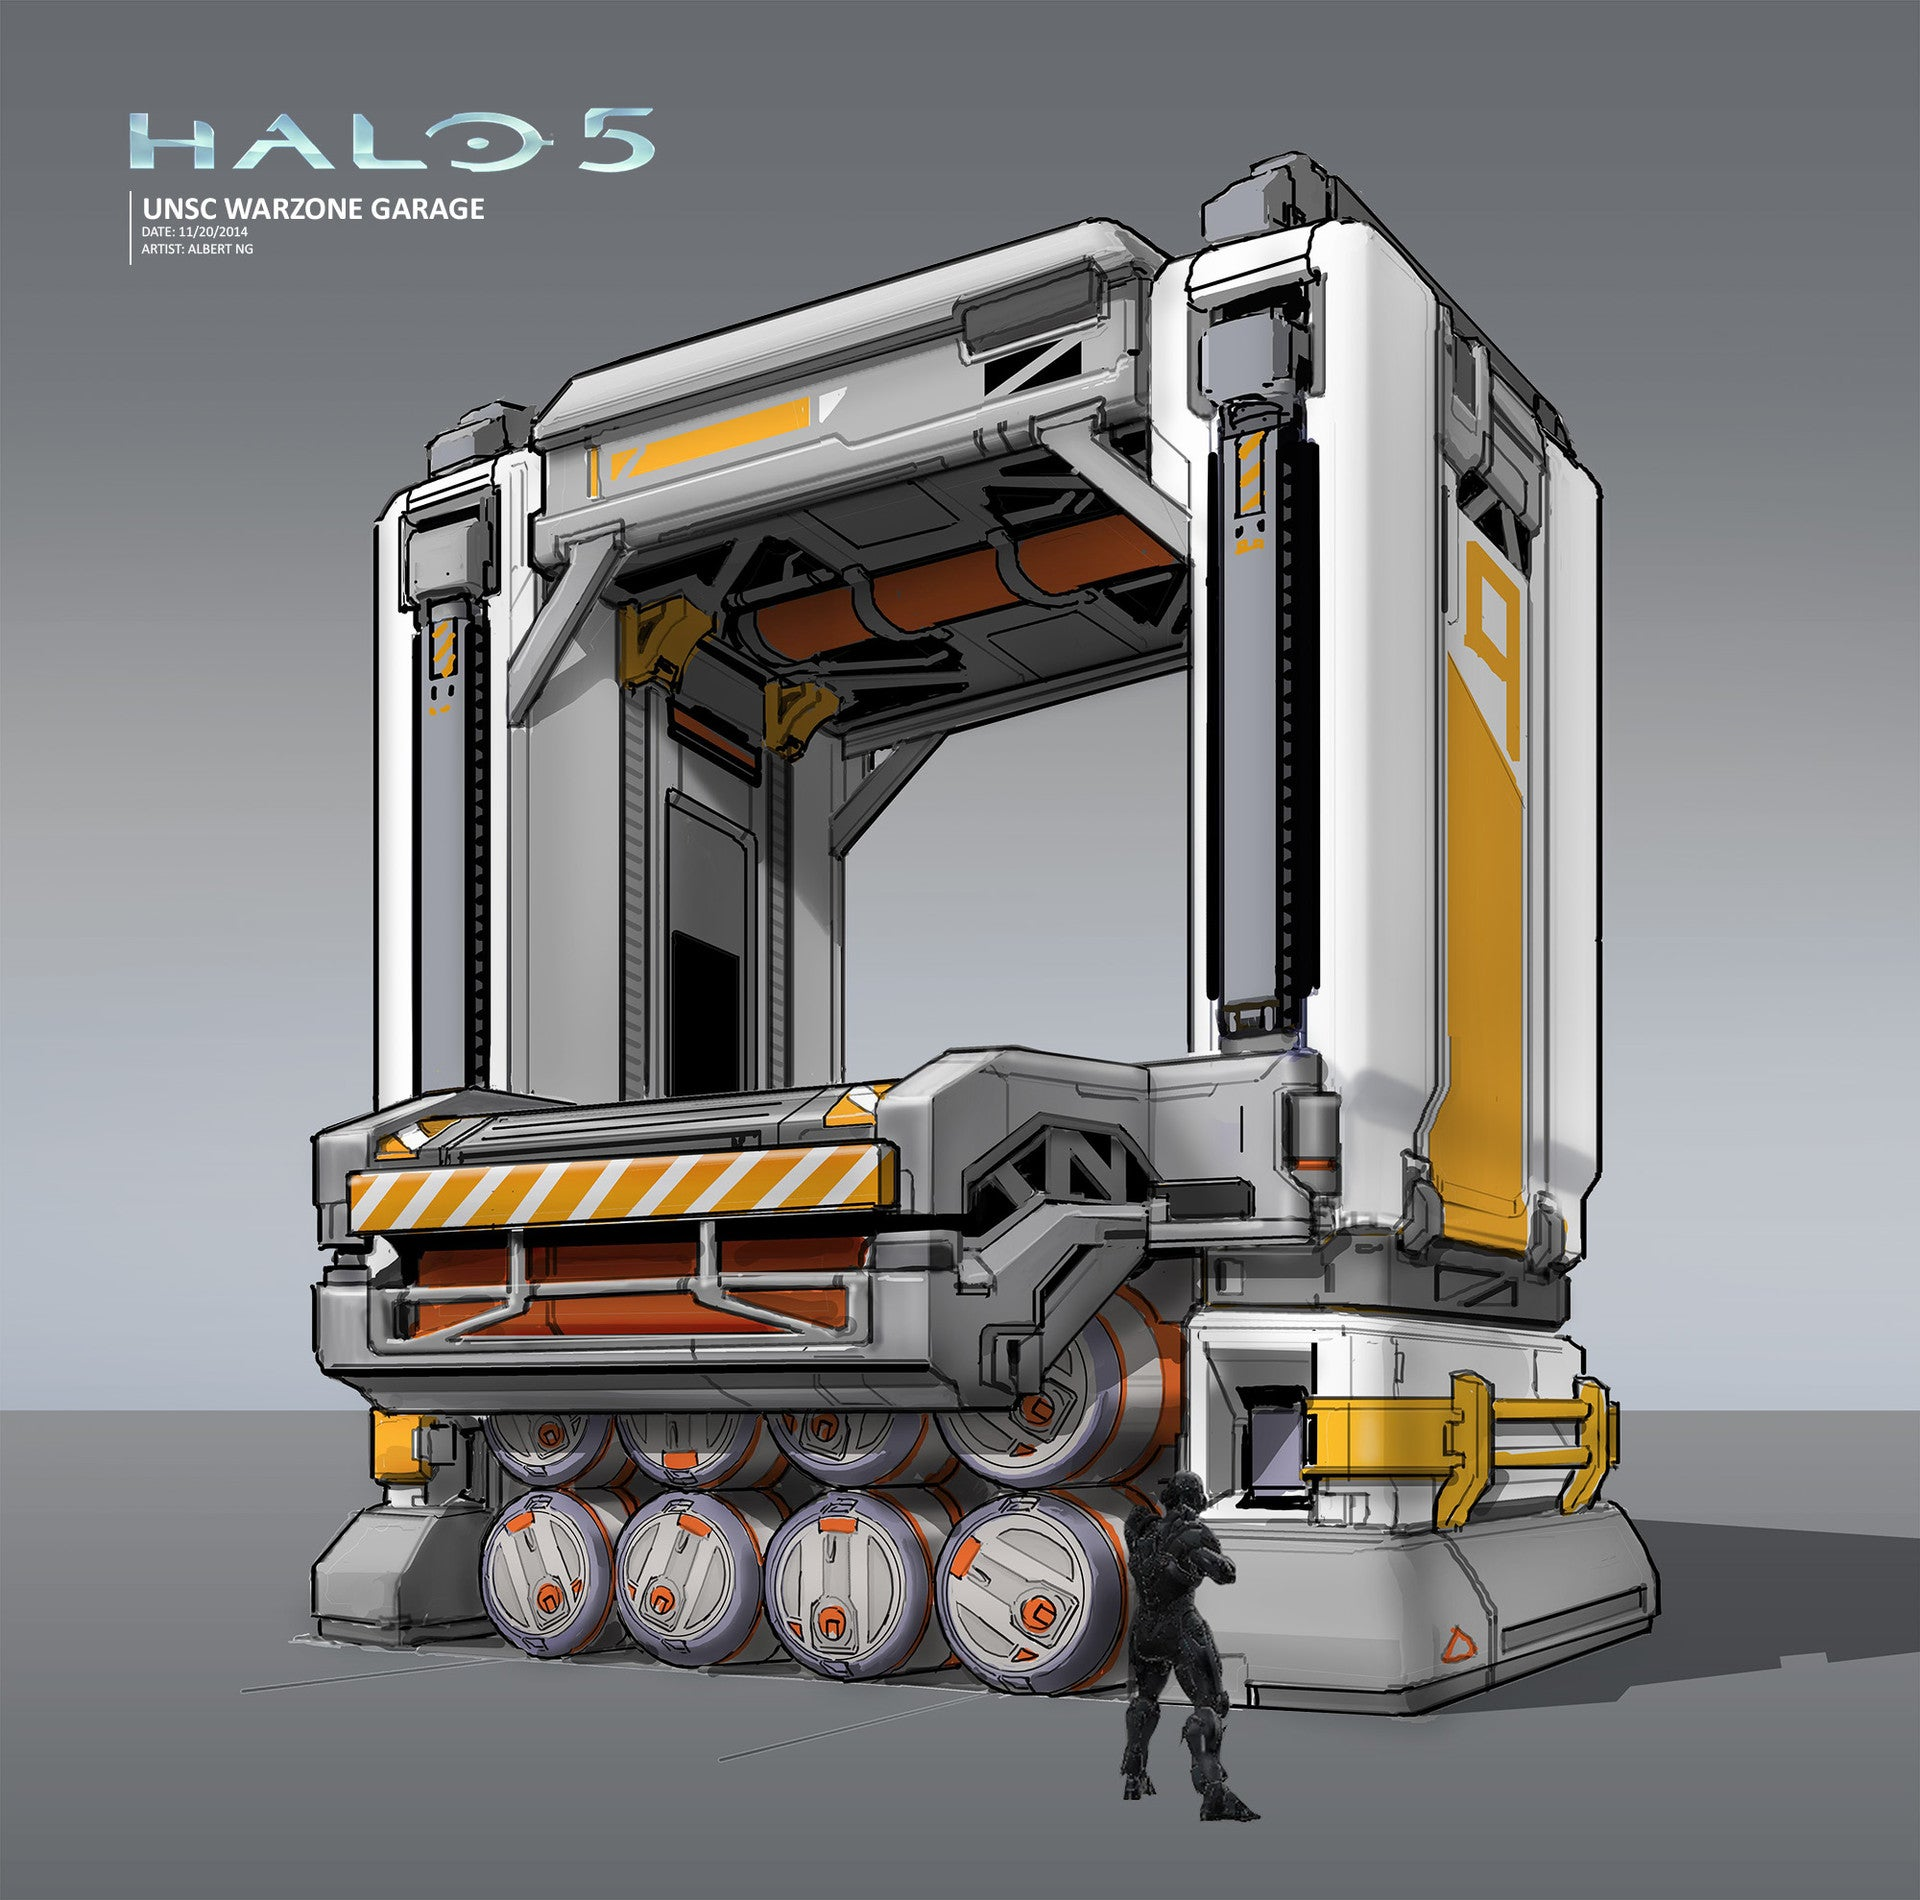 The Spaceships And Spartans Of Halo 5